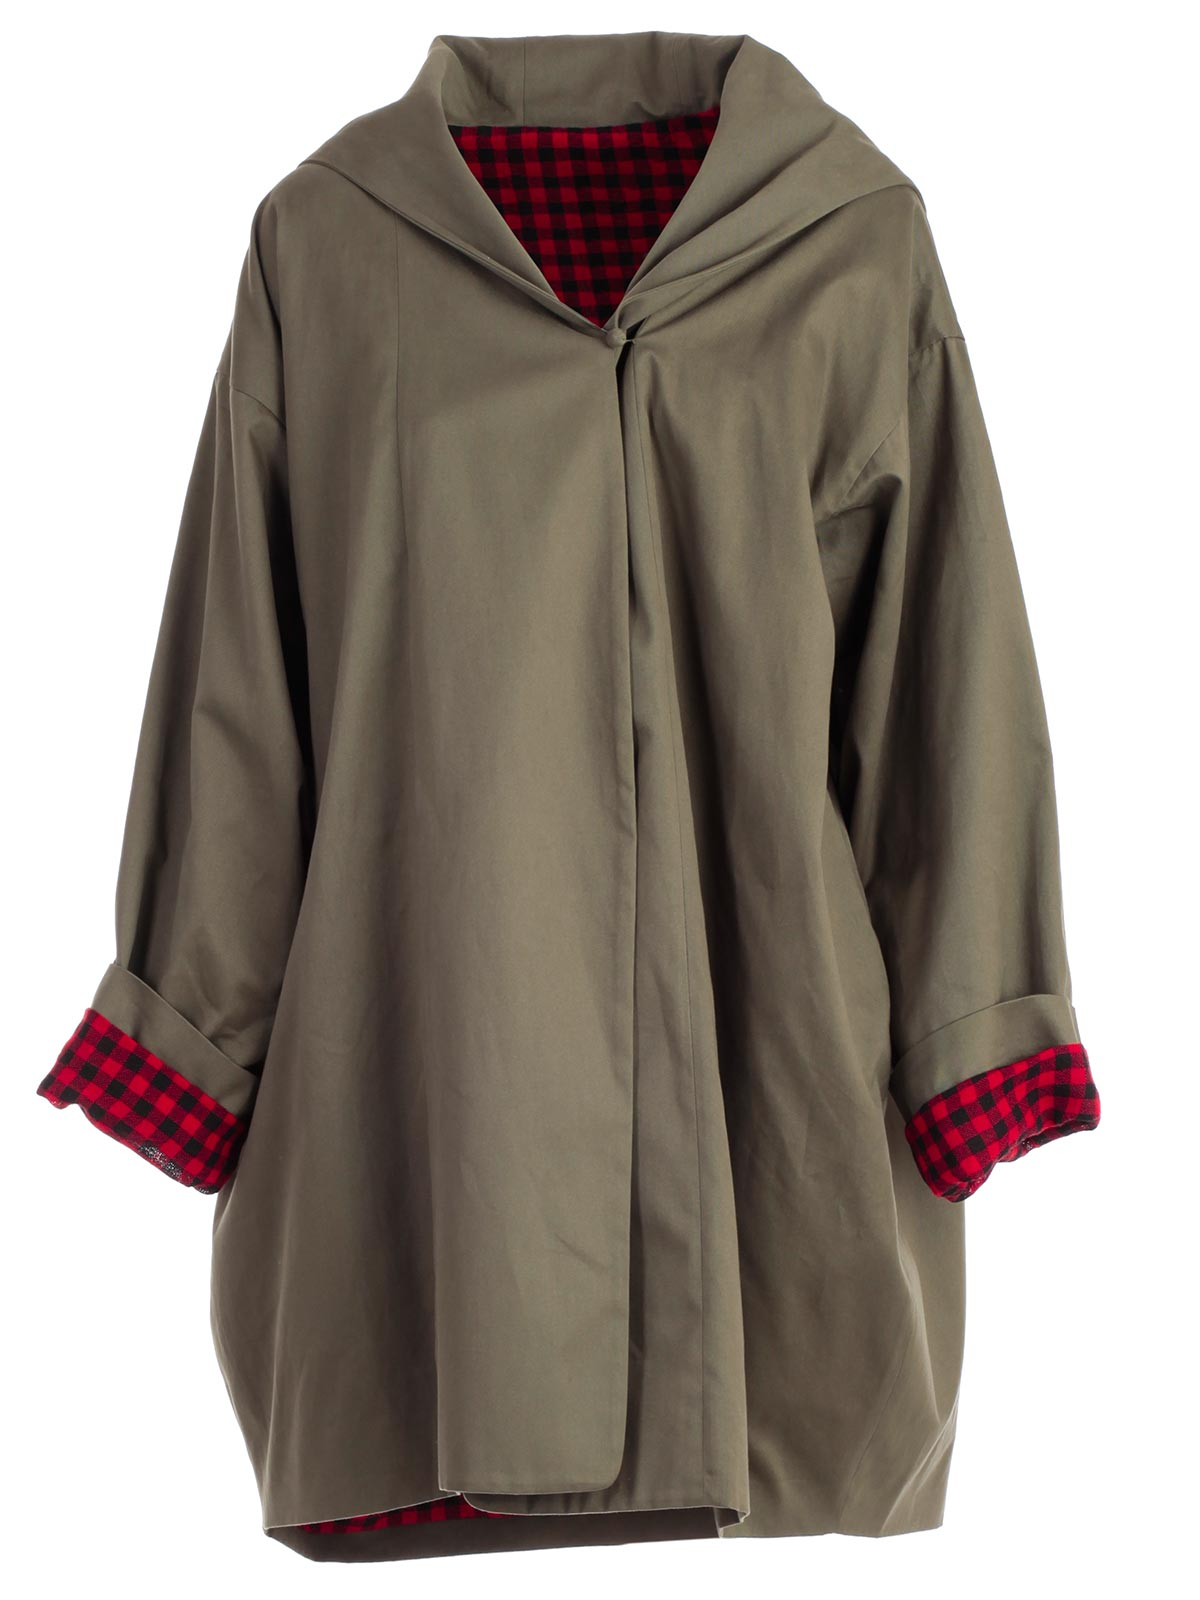 Picture of Daniela Gregis Parka